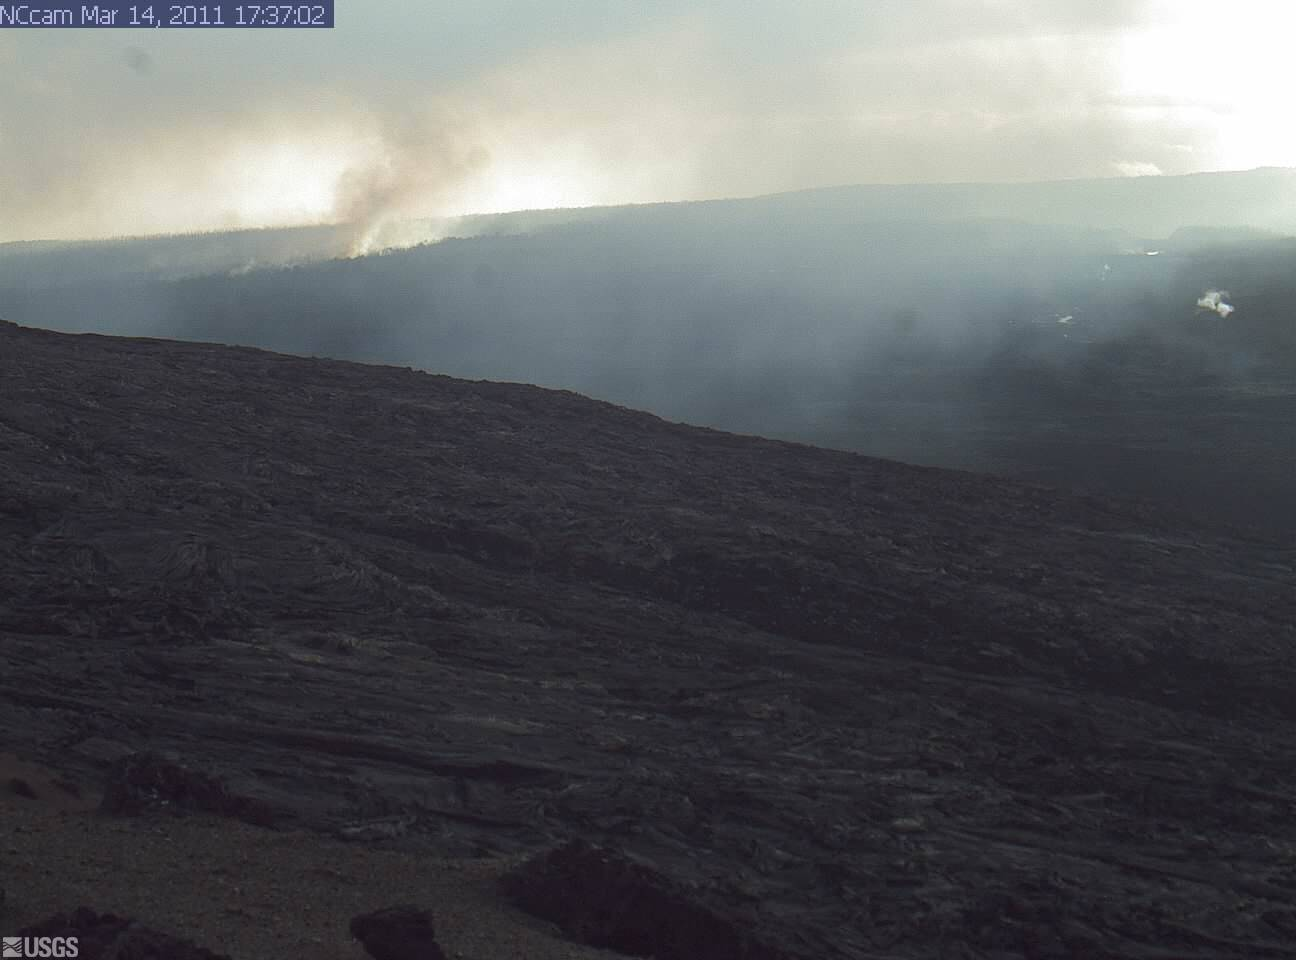 Fire creeping in Hawaii Volcanoes National Park